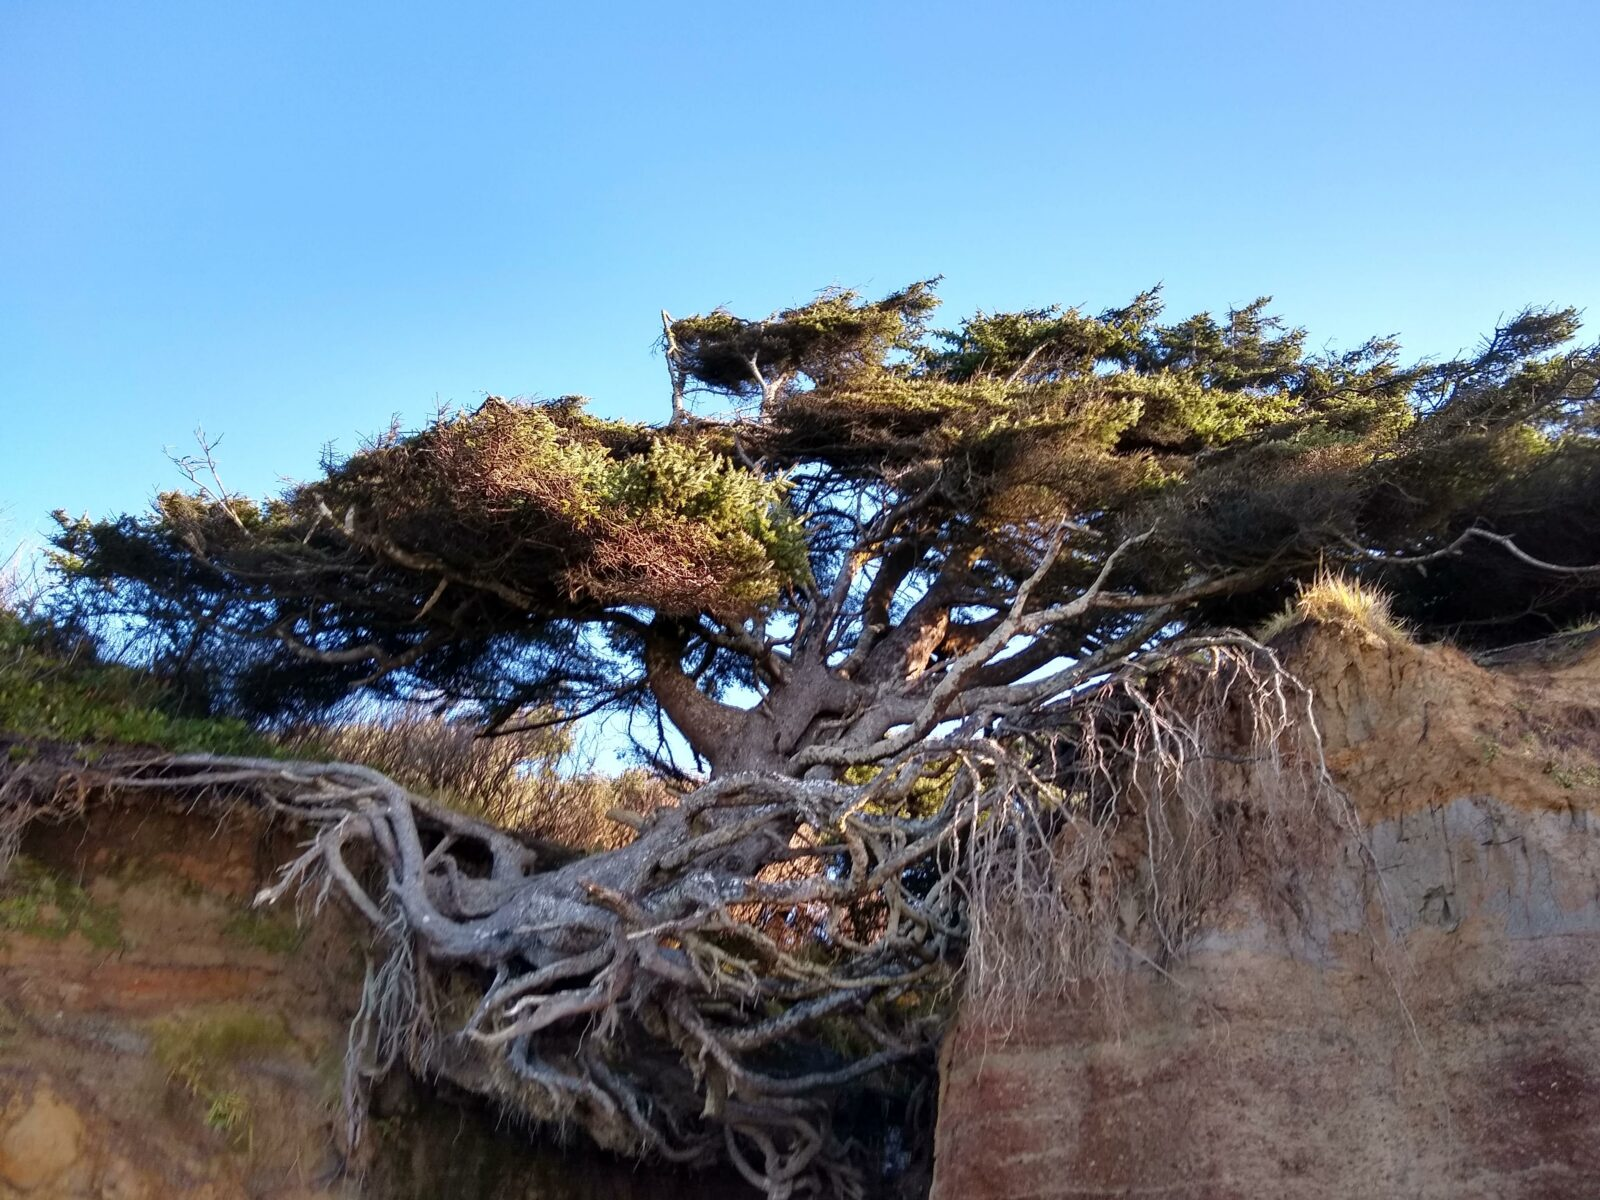 A trees roots are exposed as the cliff erodes around it at Kalaloch beach in Olympic National Park in Washington state